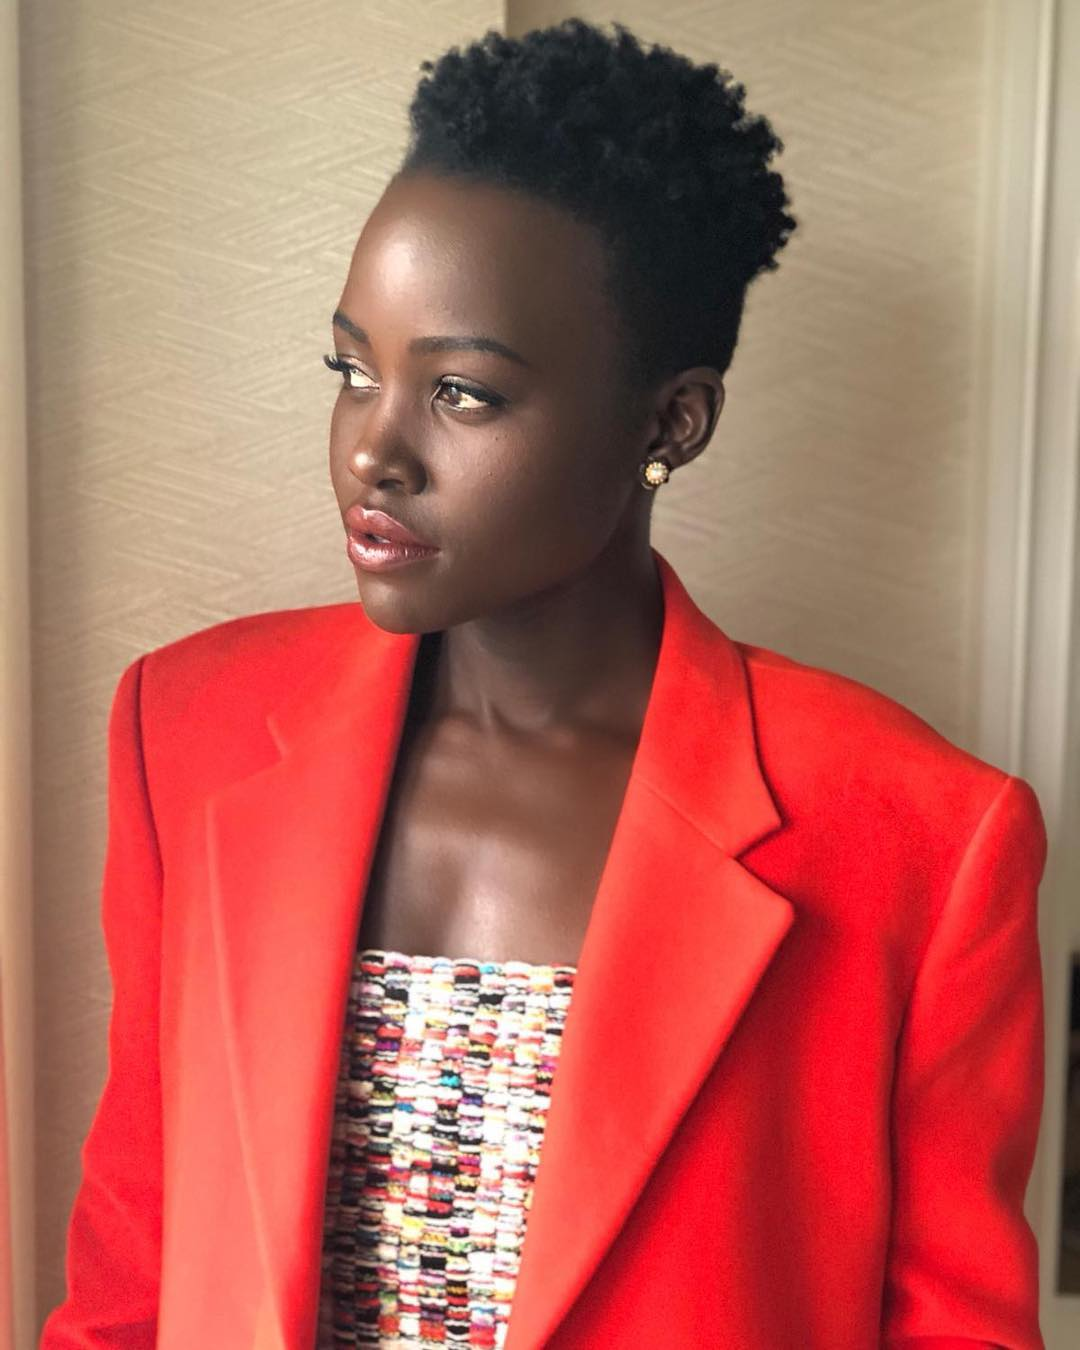 Lupita 2 - Wanafanana? Lupita and her 'twin' Adut Akech finally pose together